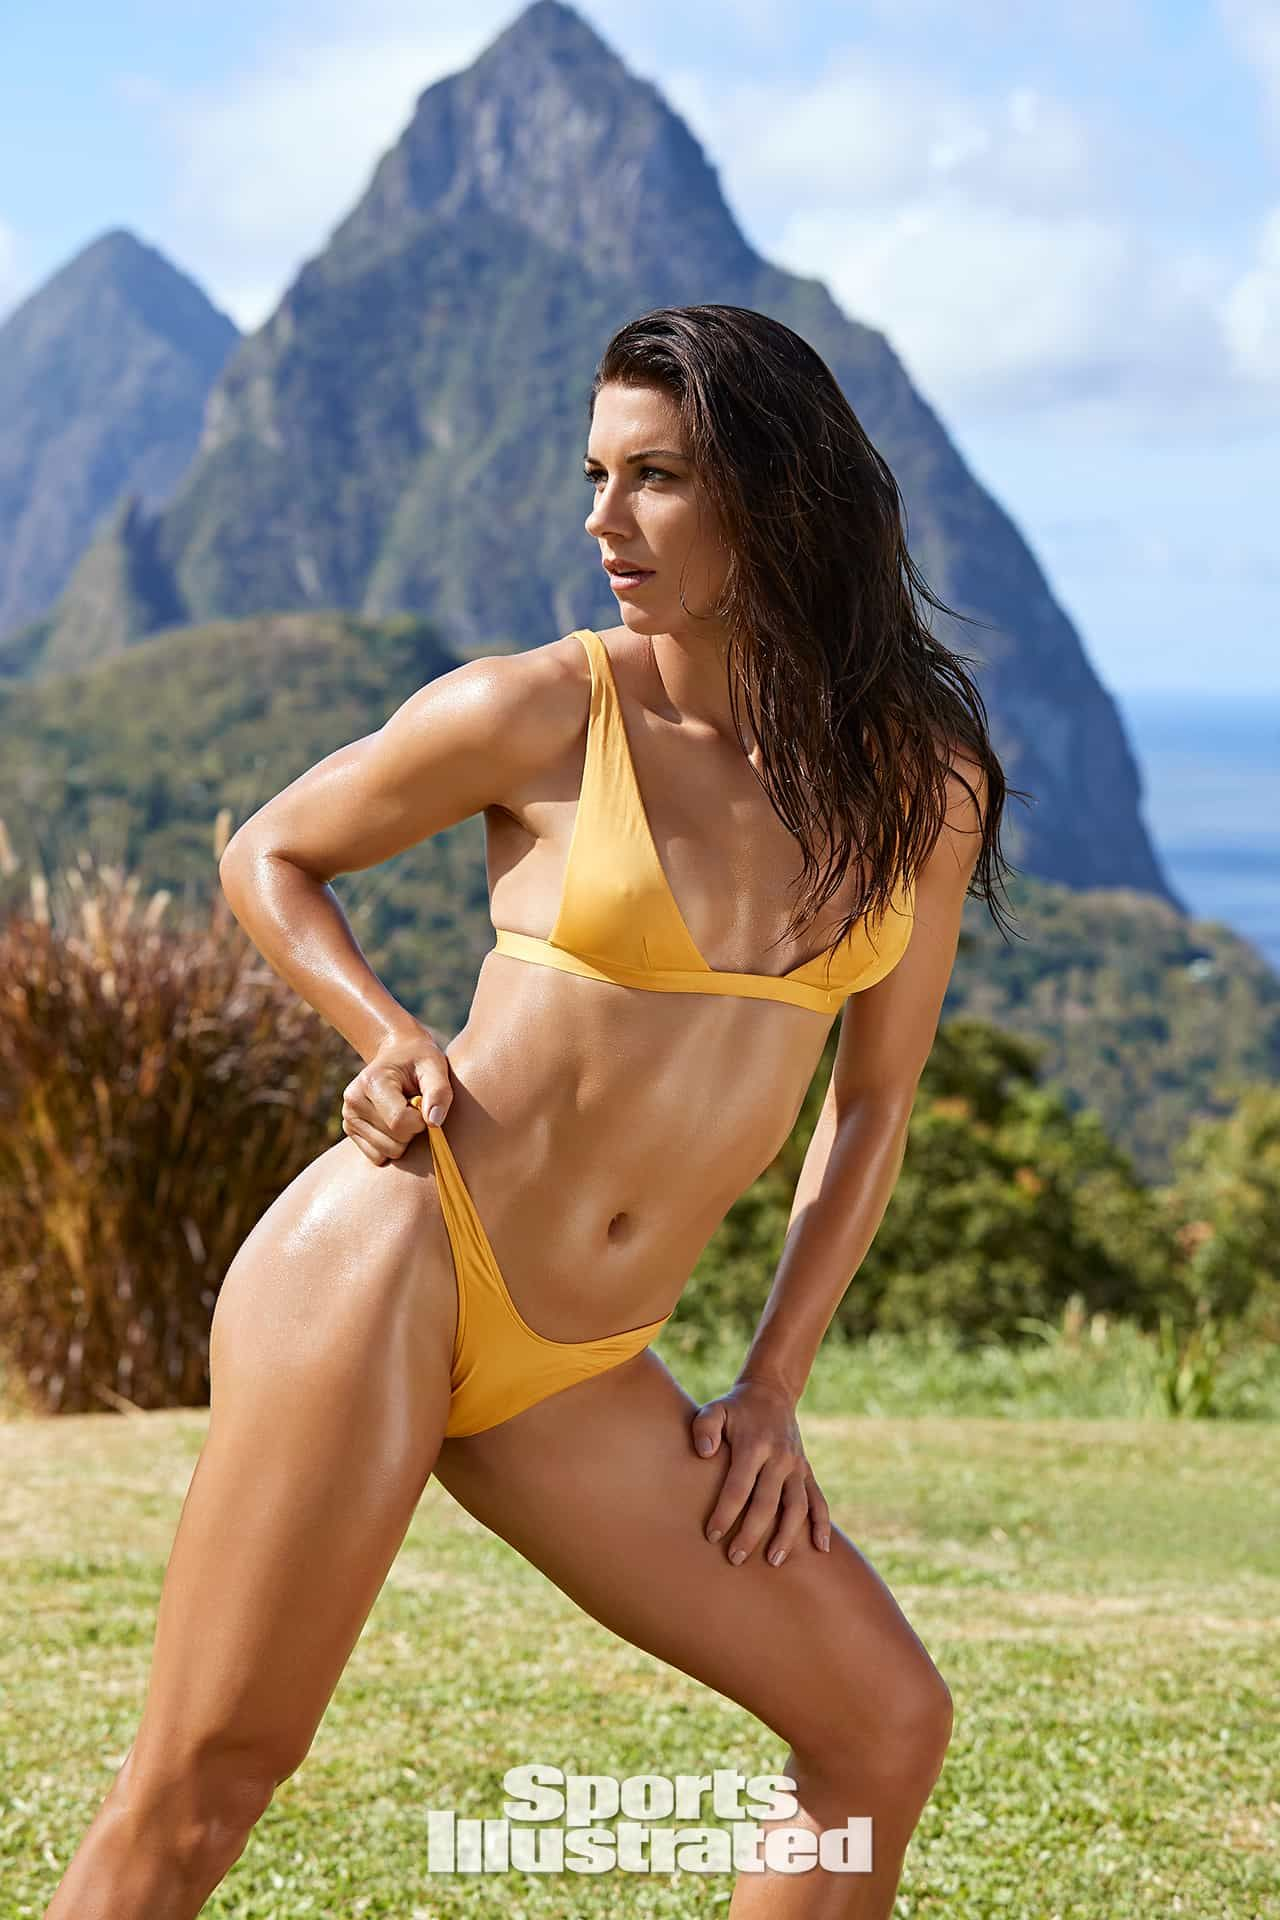 Alex Morgan: Nude in Sports Illustrated! - The Hollywood